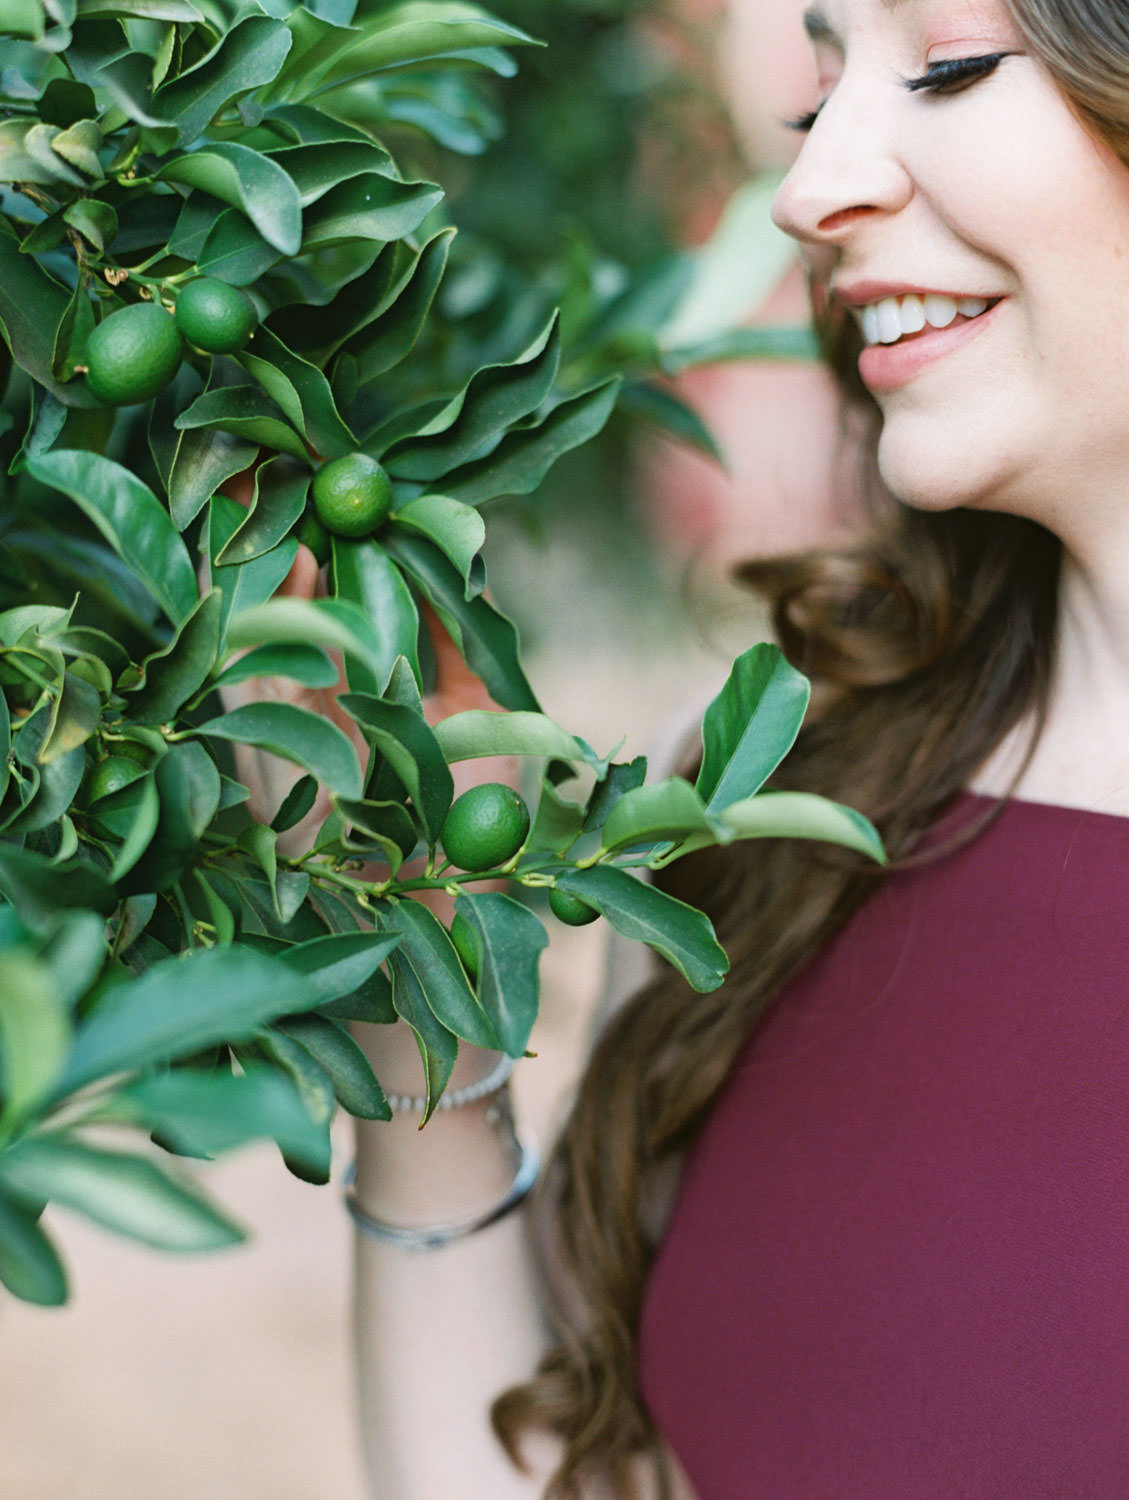 UC Riverside Engagement session in the orange grove. Bride in long berry marsala dress and groom in navy suit. Film photographer Cavin Elizabeth Photography.